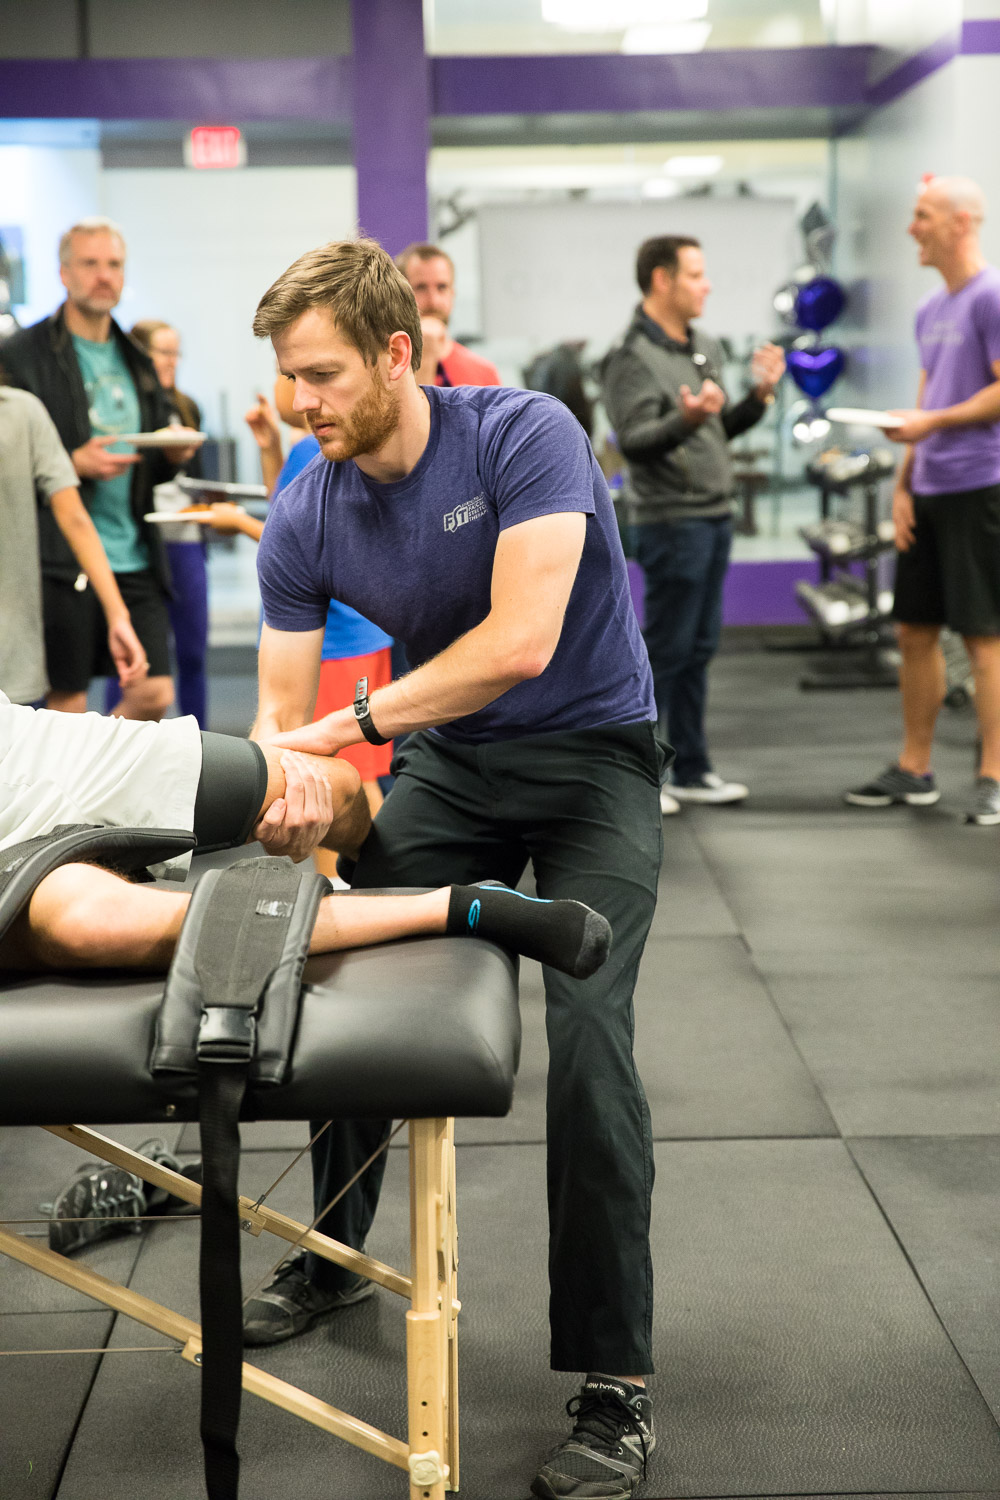 CrossFit Homeward offers Fascial Stretch Therapy